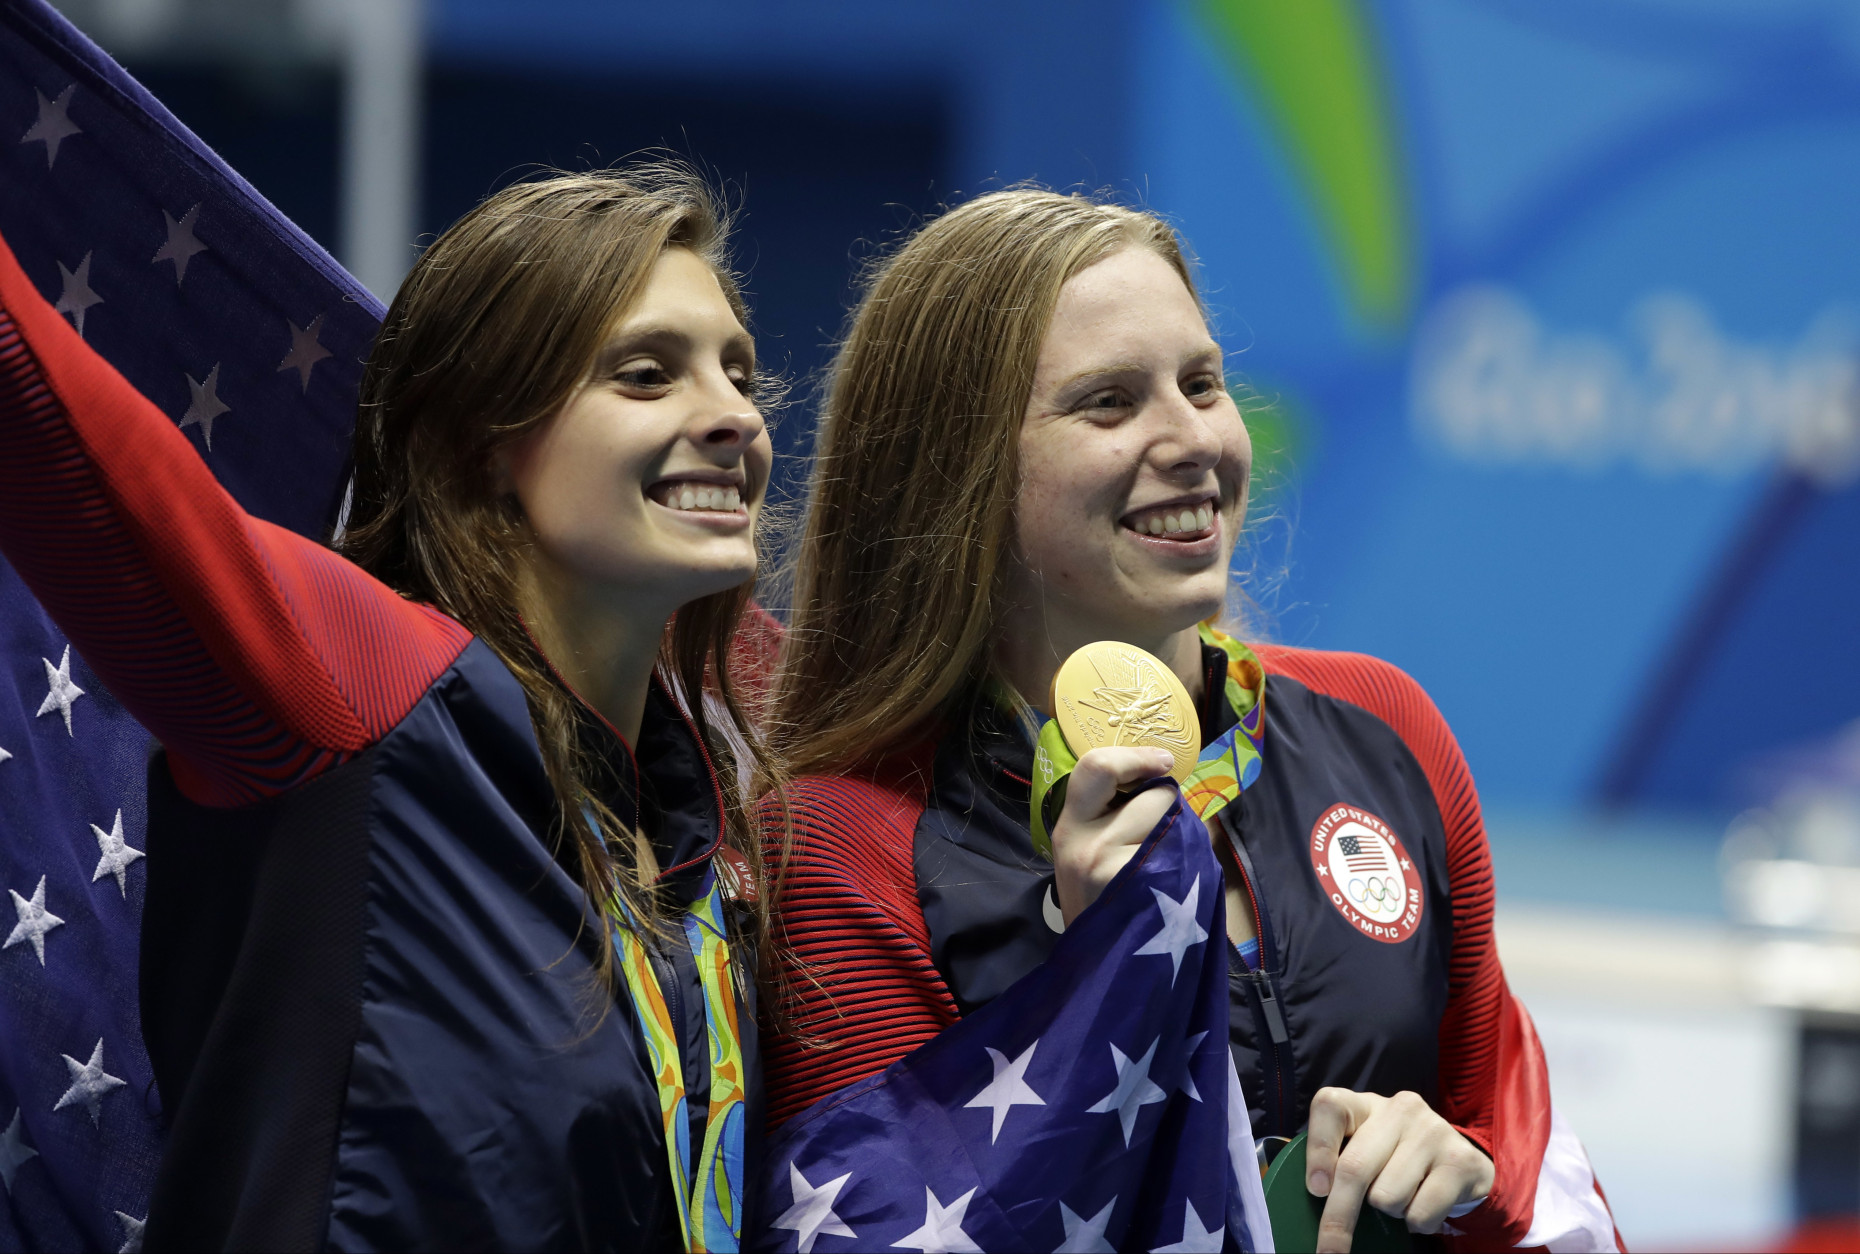 Winner United States' Lilly King, right, and third place United States' Katie Meili celebrate after the women's 100-meter breaststroke during the swimming competitions at the 2016 Summer Olympics, Tuesday, Aug. 9, 2016, in Rio de Janeiro, Brazil. (AP Photo/Matt Slocum)